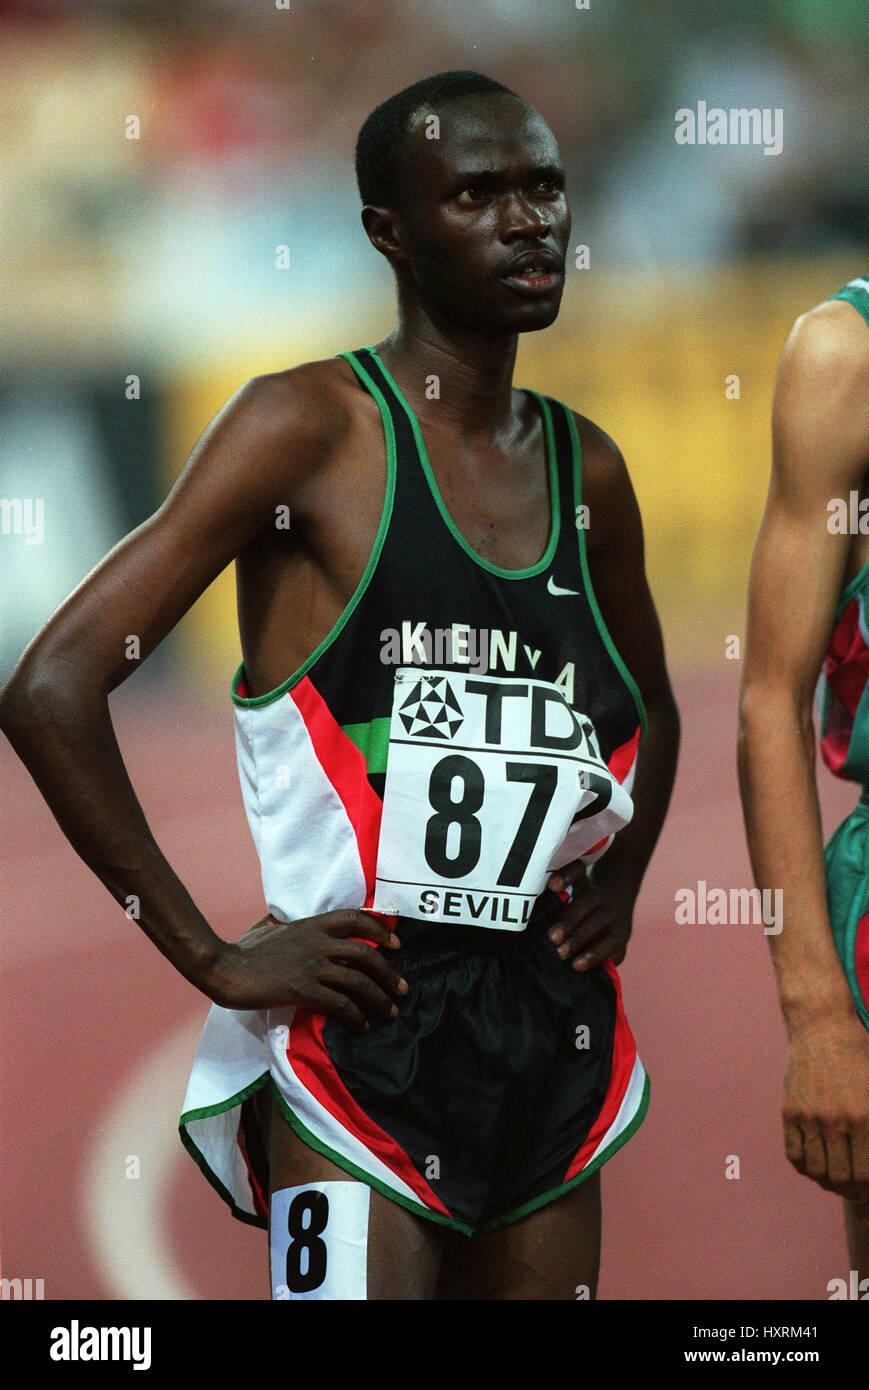 LABAN ROTICH 1500 METERS 24 August 1999 - Stock Image